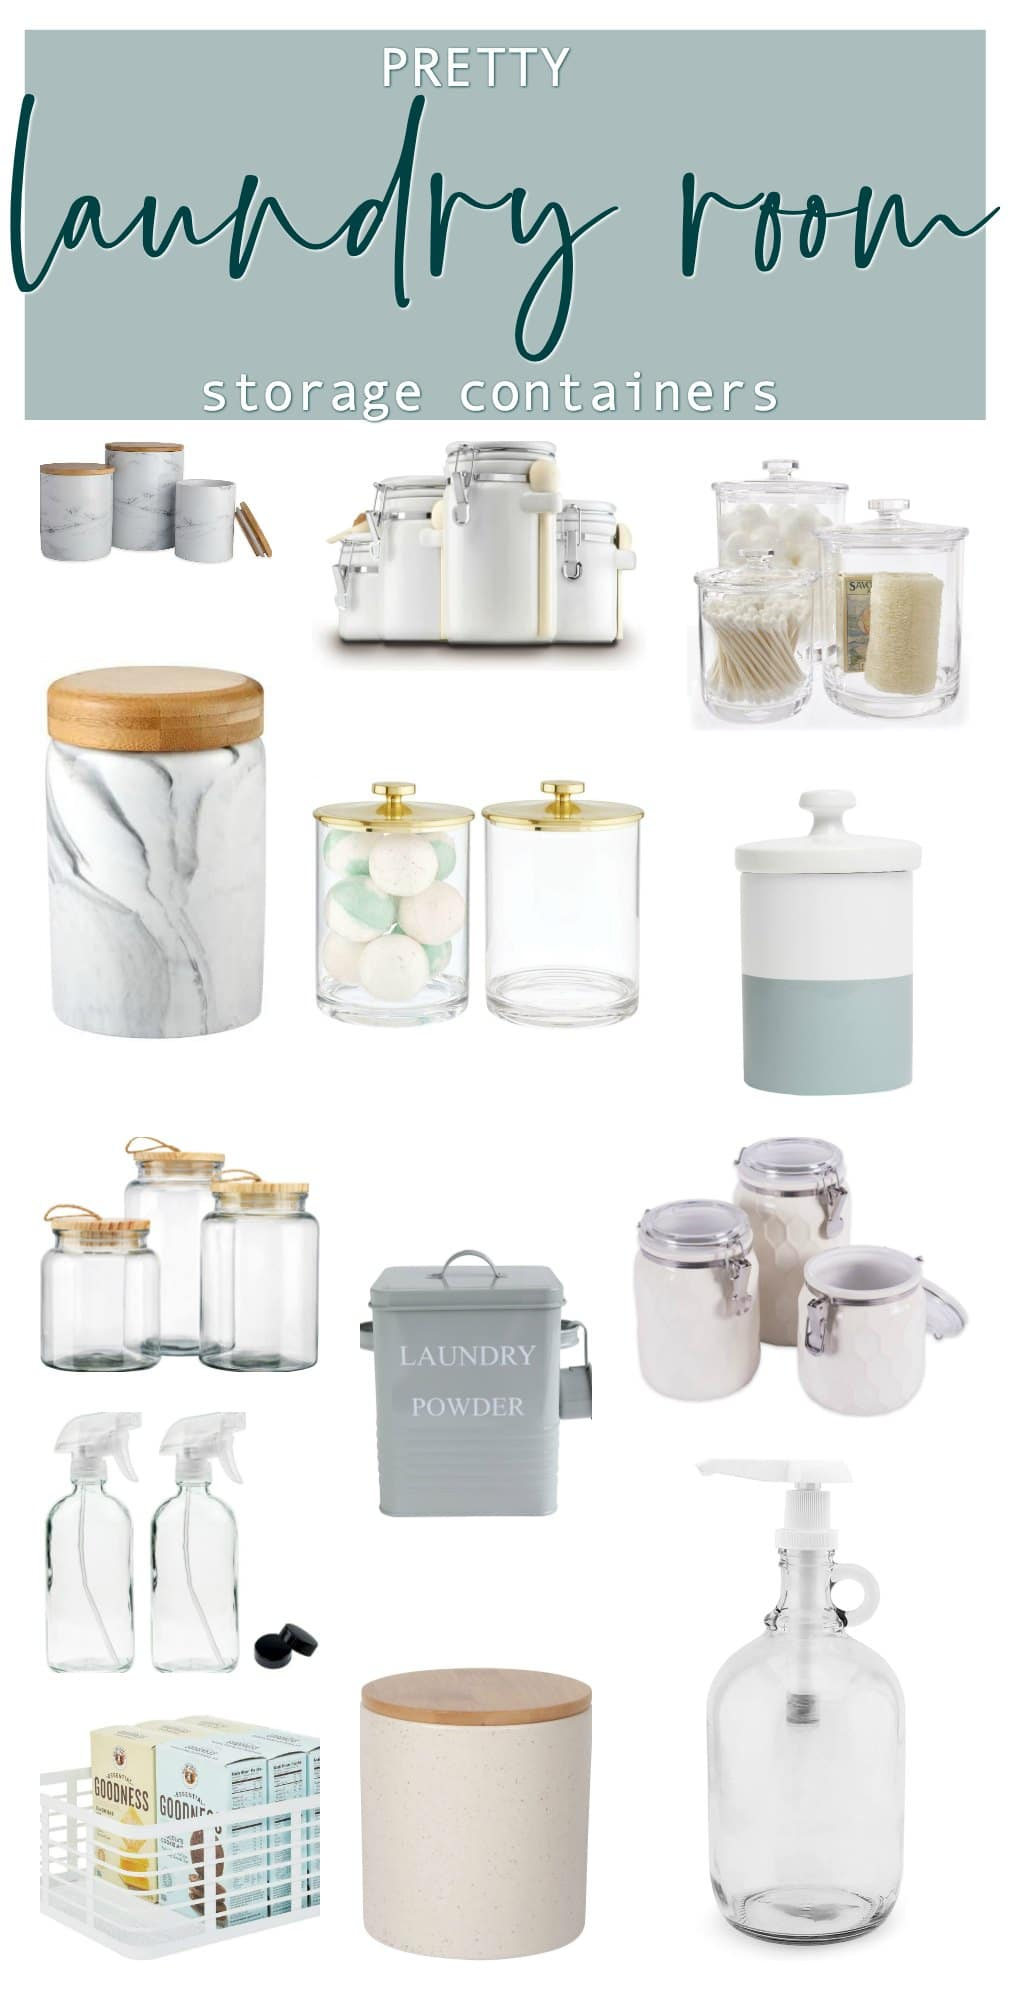 Pretty Laundry Room Storage containers with easy to find links